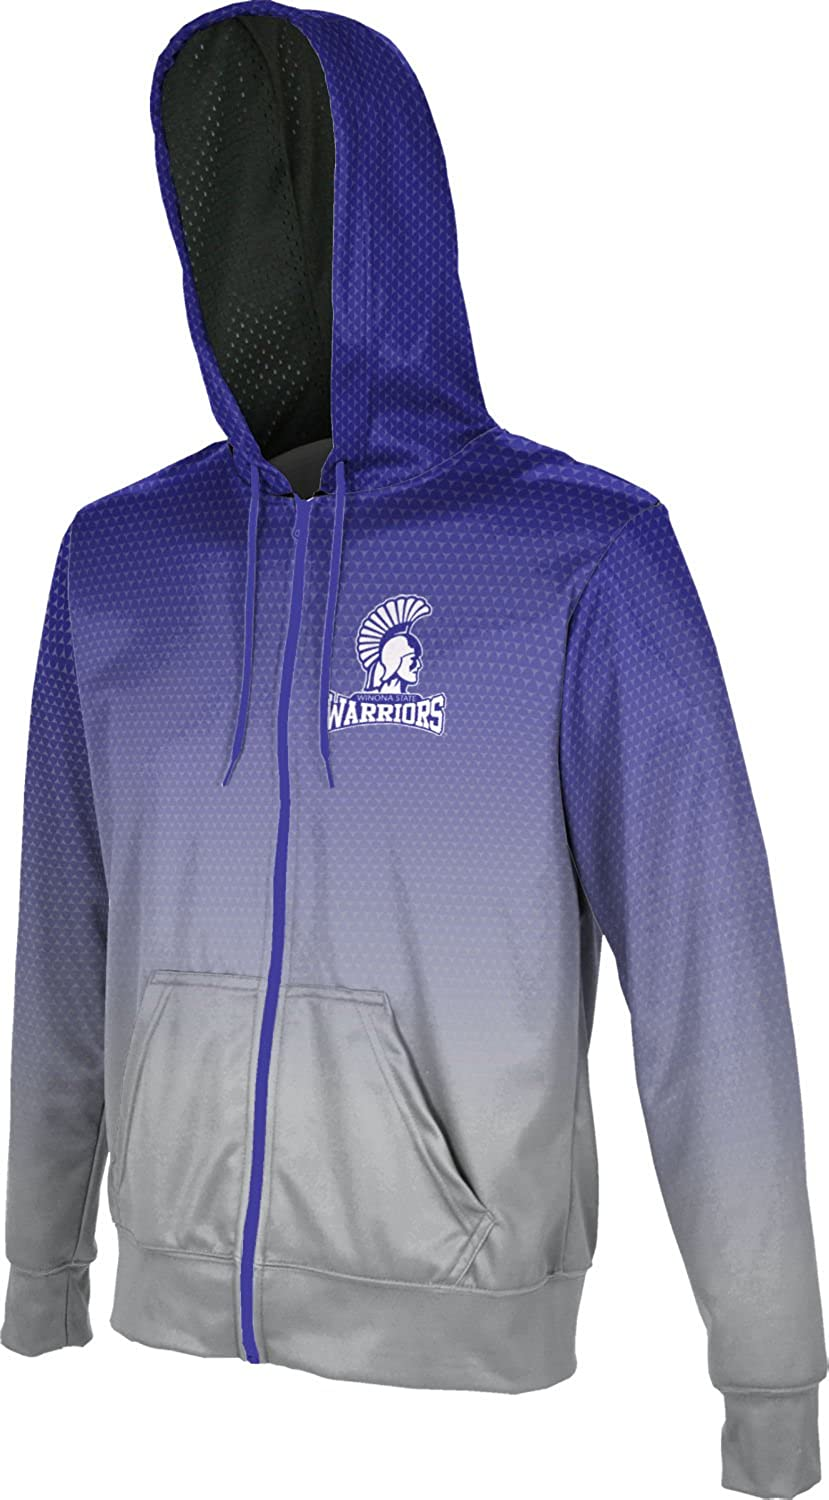 Zoom F7DF3 Large ProSphere Winona State University Mens Full Zip Hoodie Violet and Light Gray